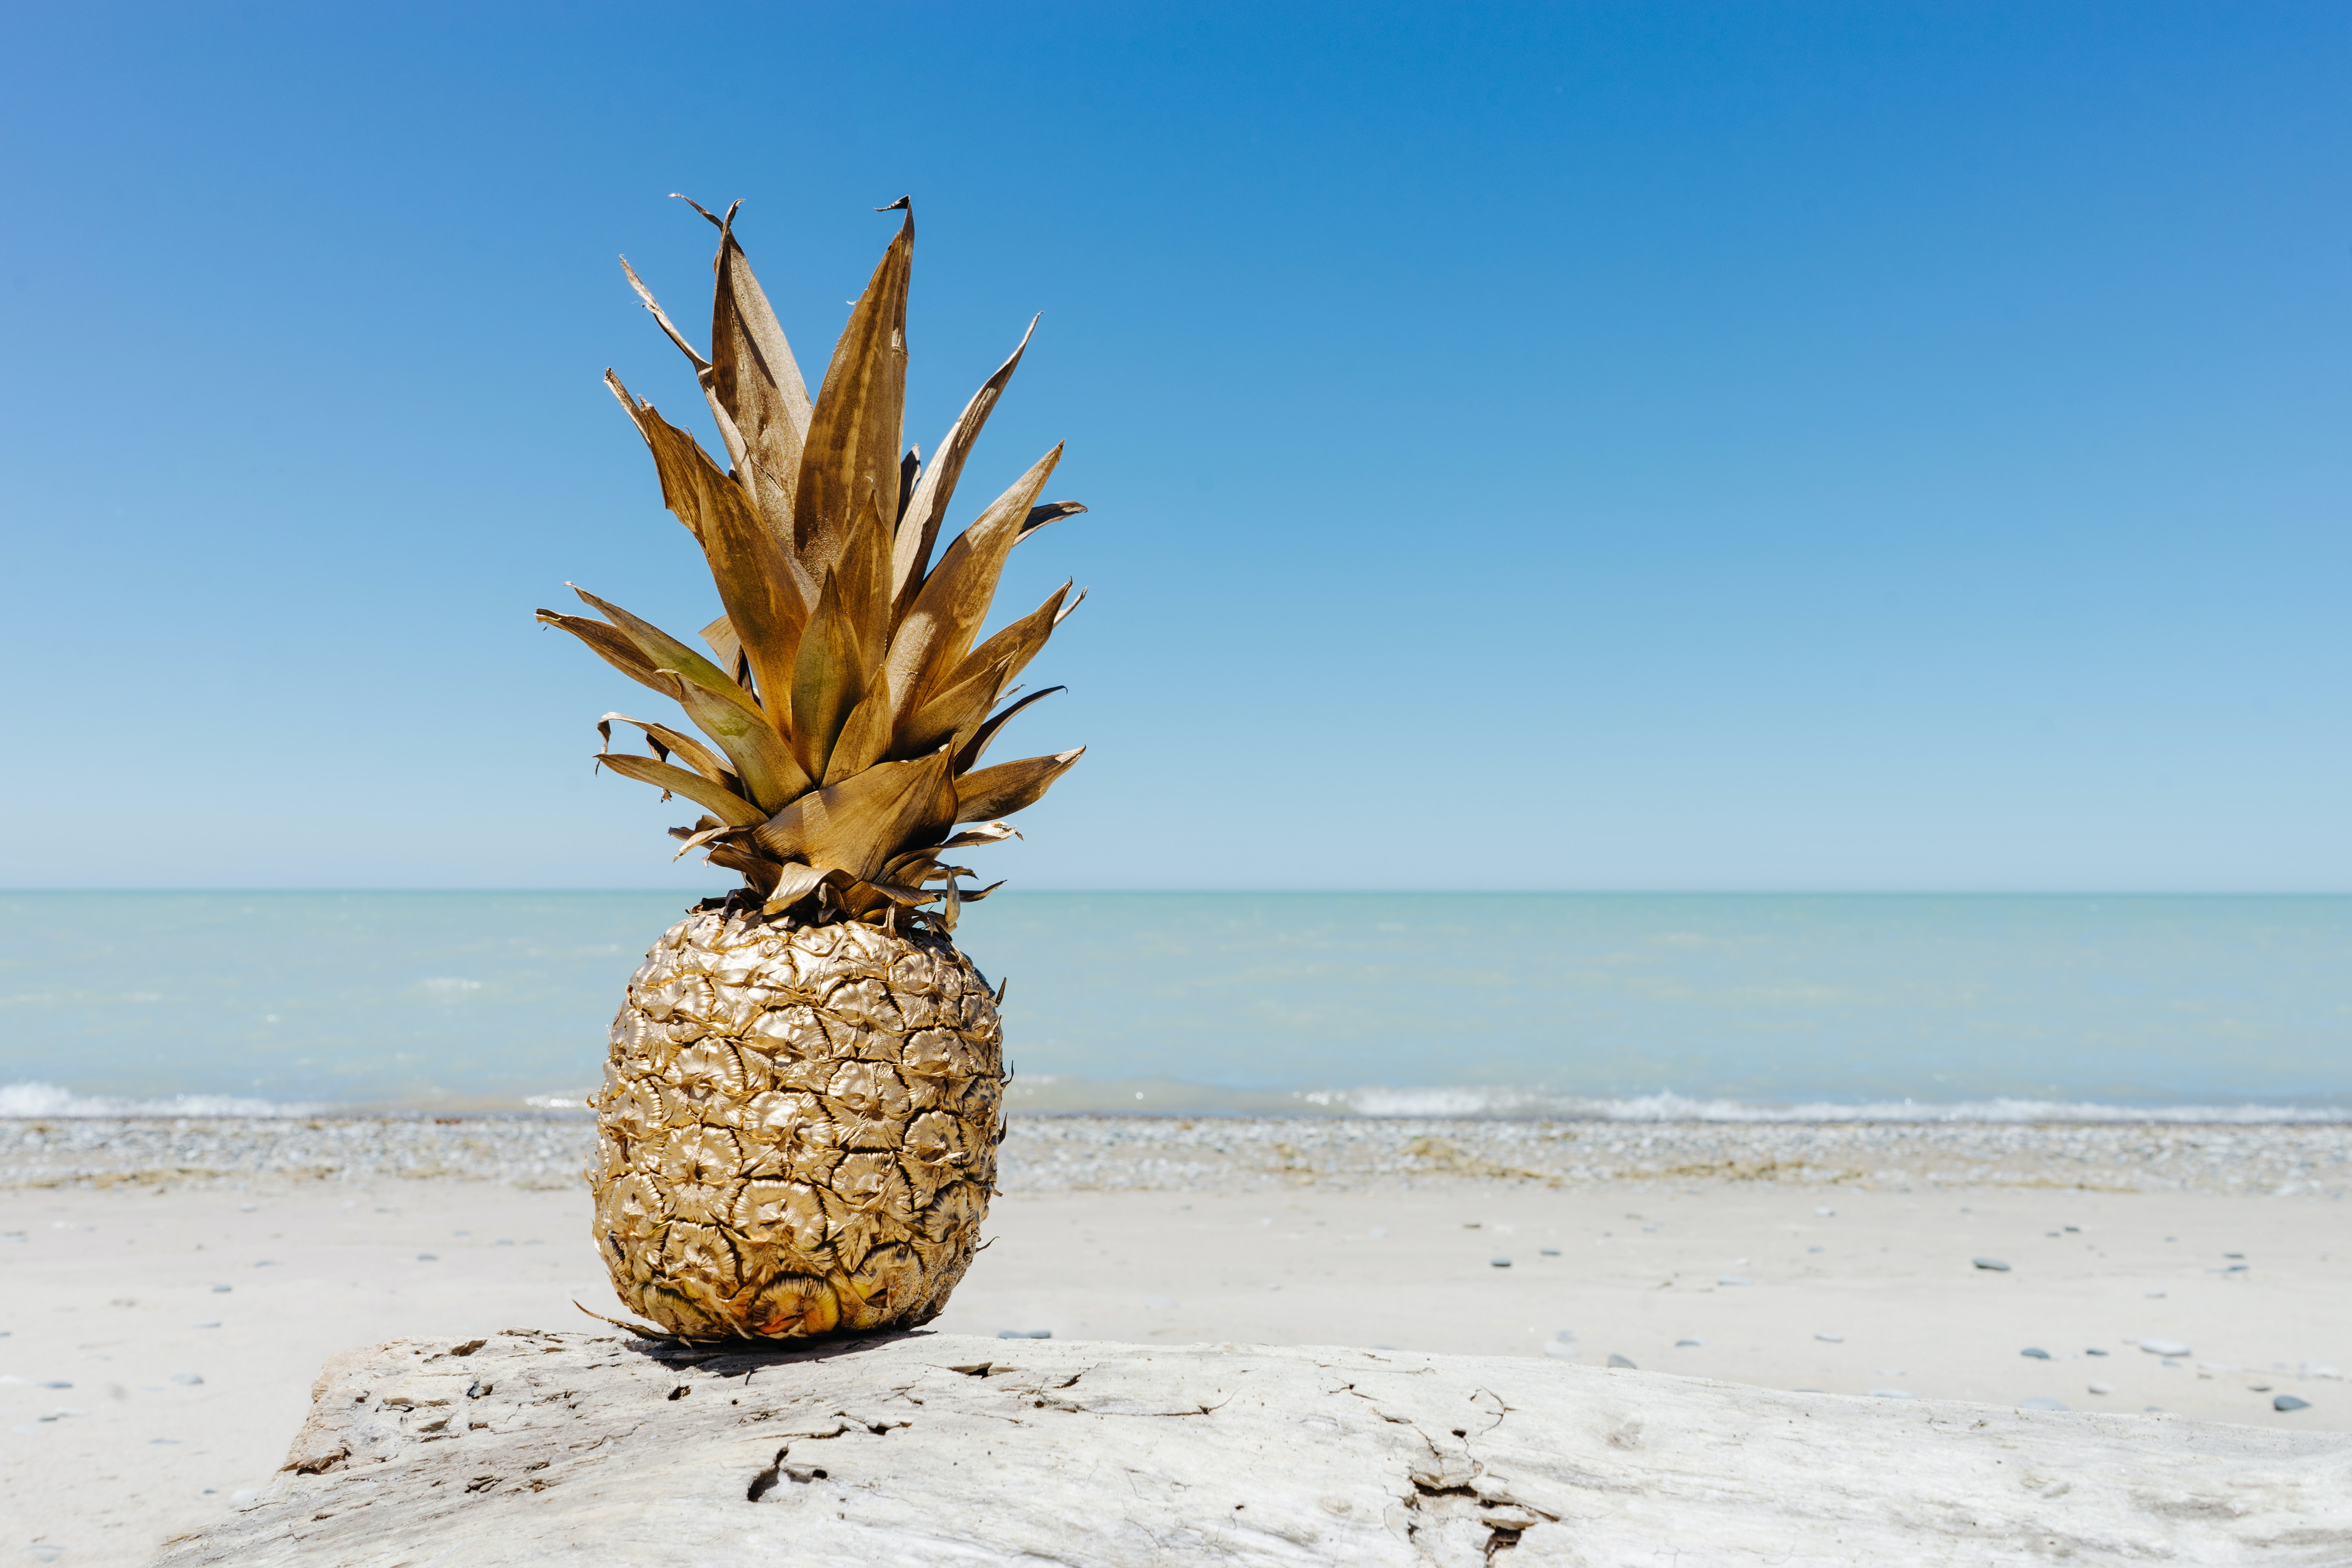 brown pineapple fruit on seashore